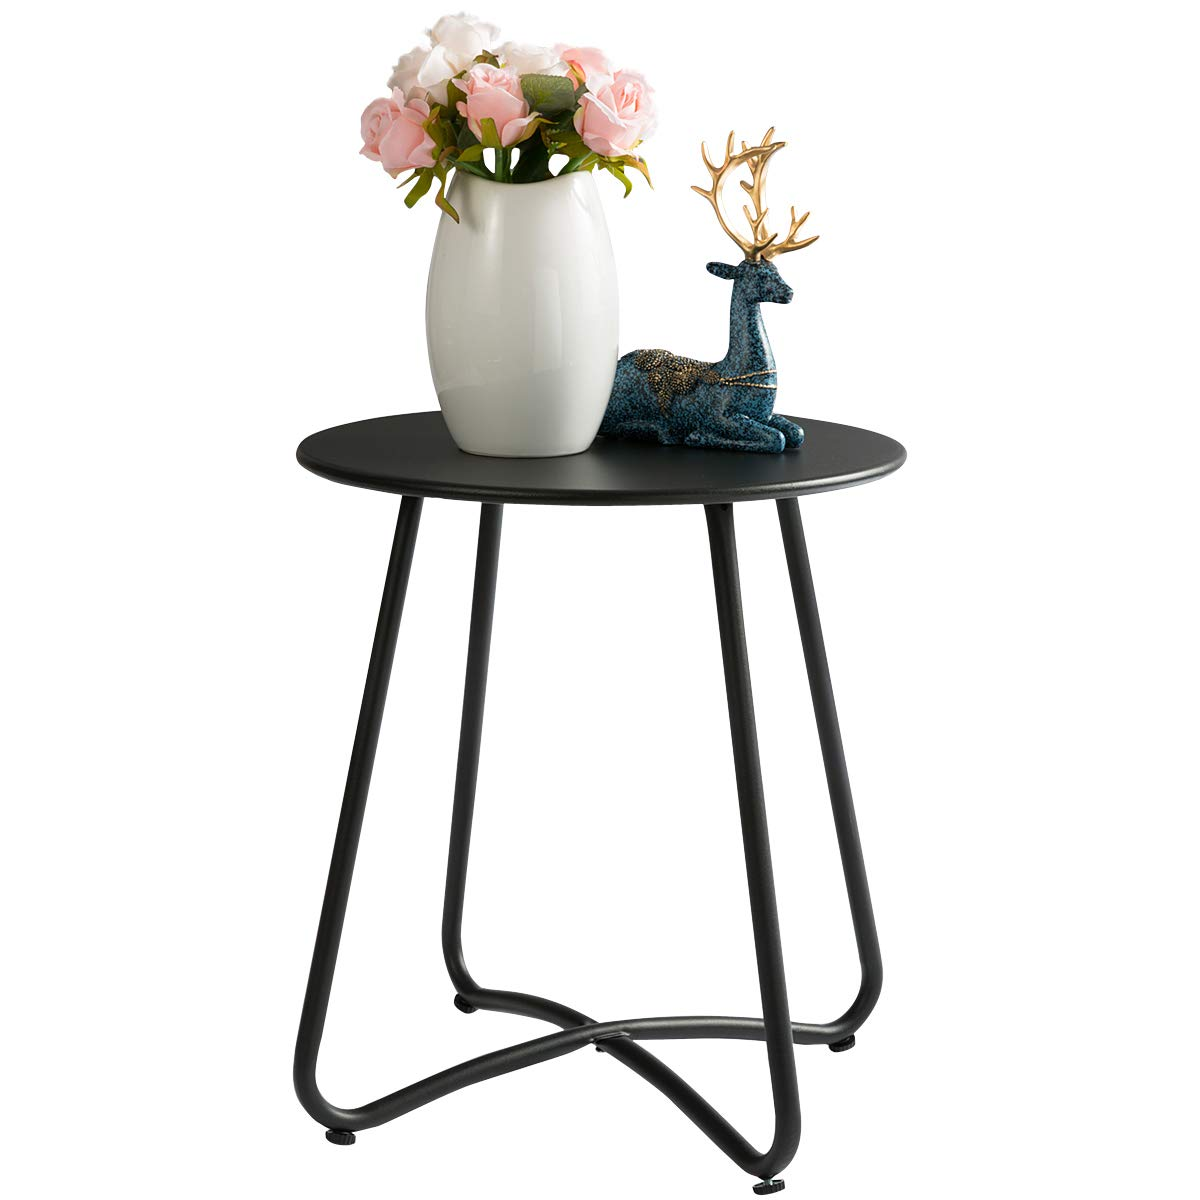 """HollyHOME Small Round Patio Metal Side Snack Table, Accent Anti-Rust Steel Coffee Table for Garden, Modern Weatherproof Outdoor End Table, (H) 17.55"""" x(D) 15.60"""", Black"""